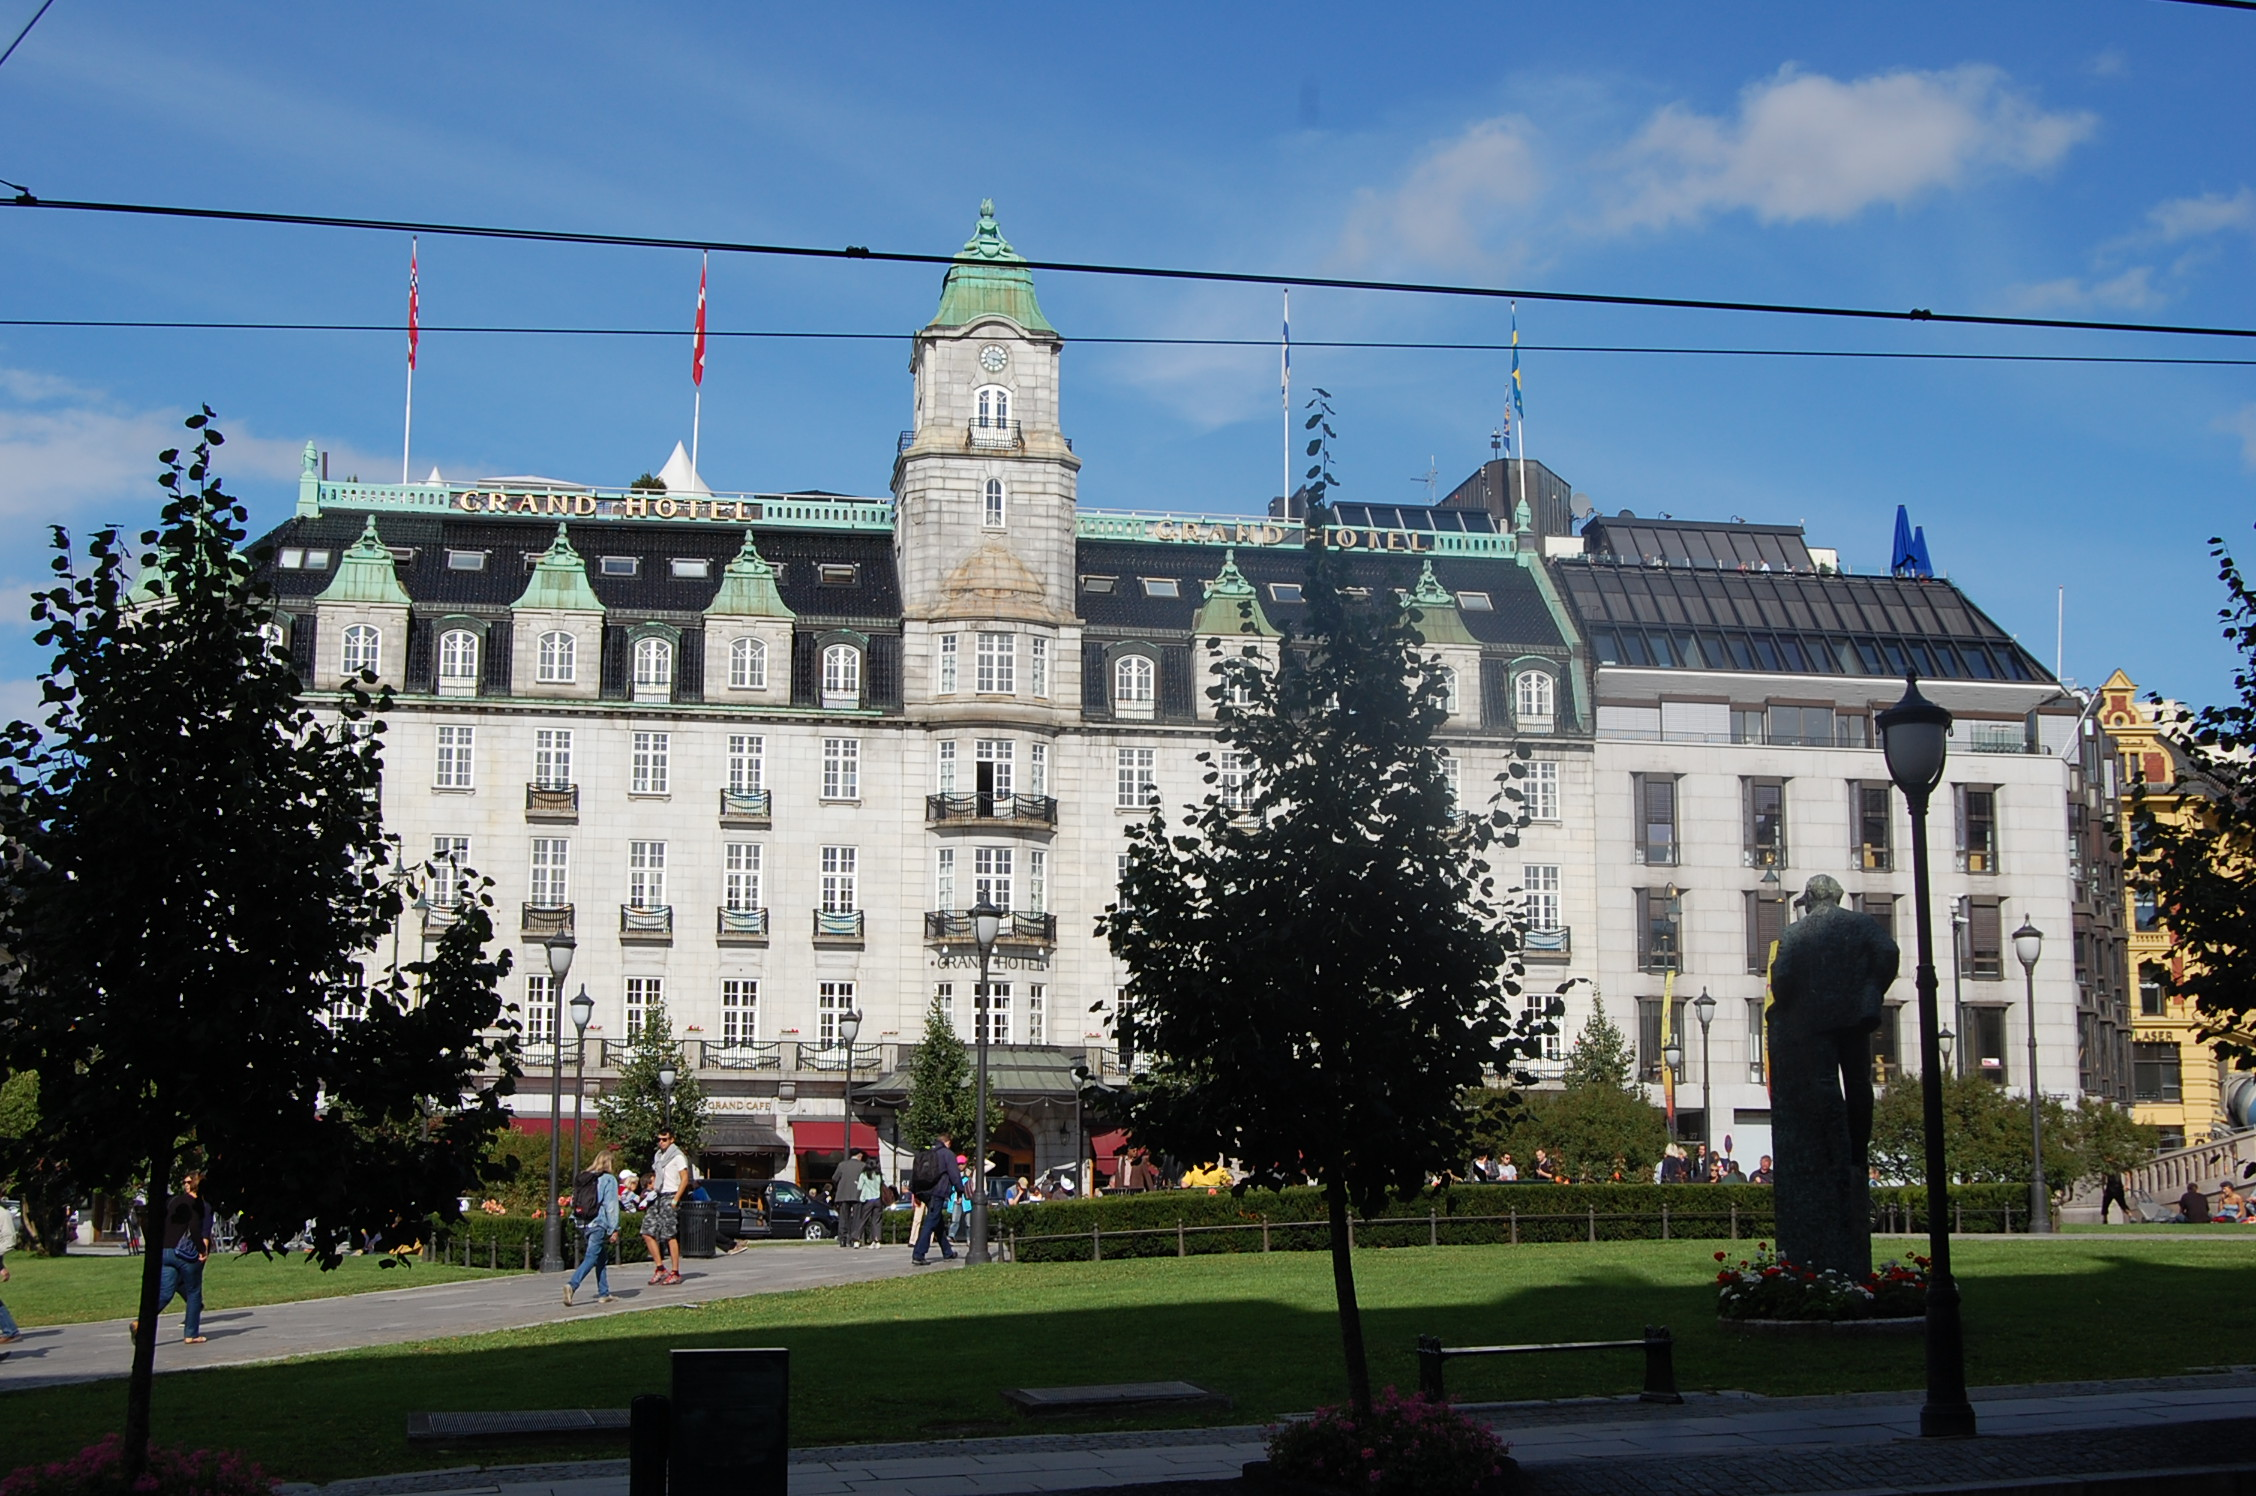 grand hotel oslo norway where you ll stay amongst royalty. Black Bedroom Furniture Sets. Home Design Ideas